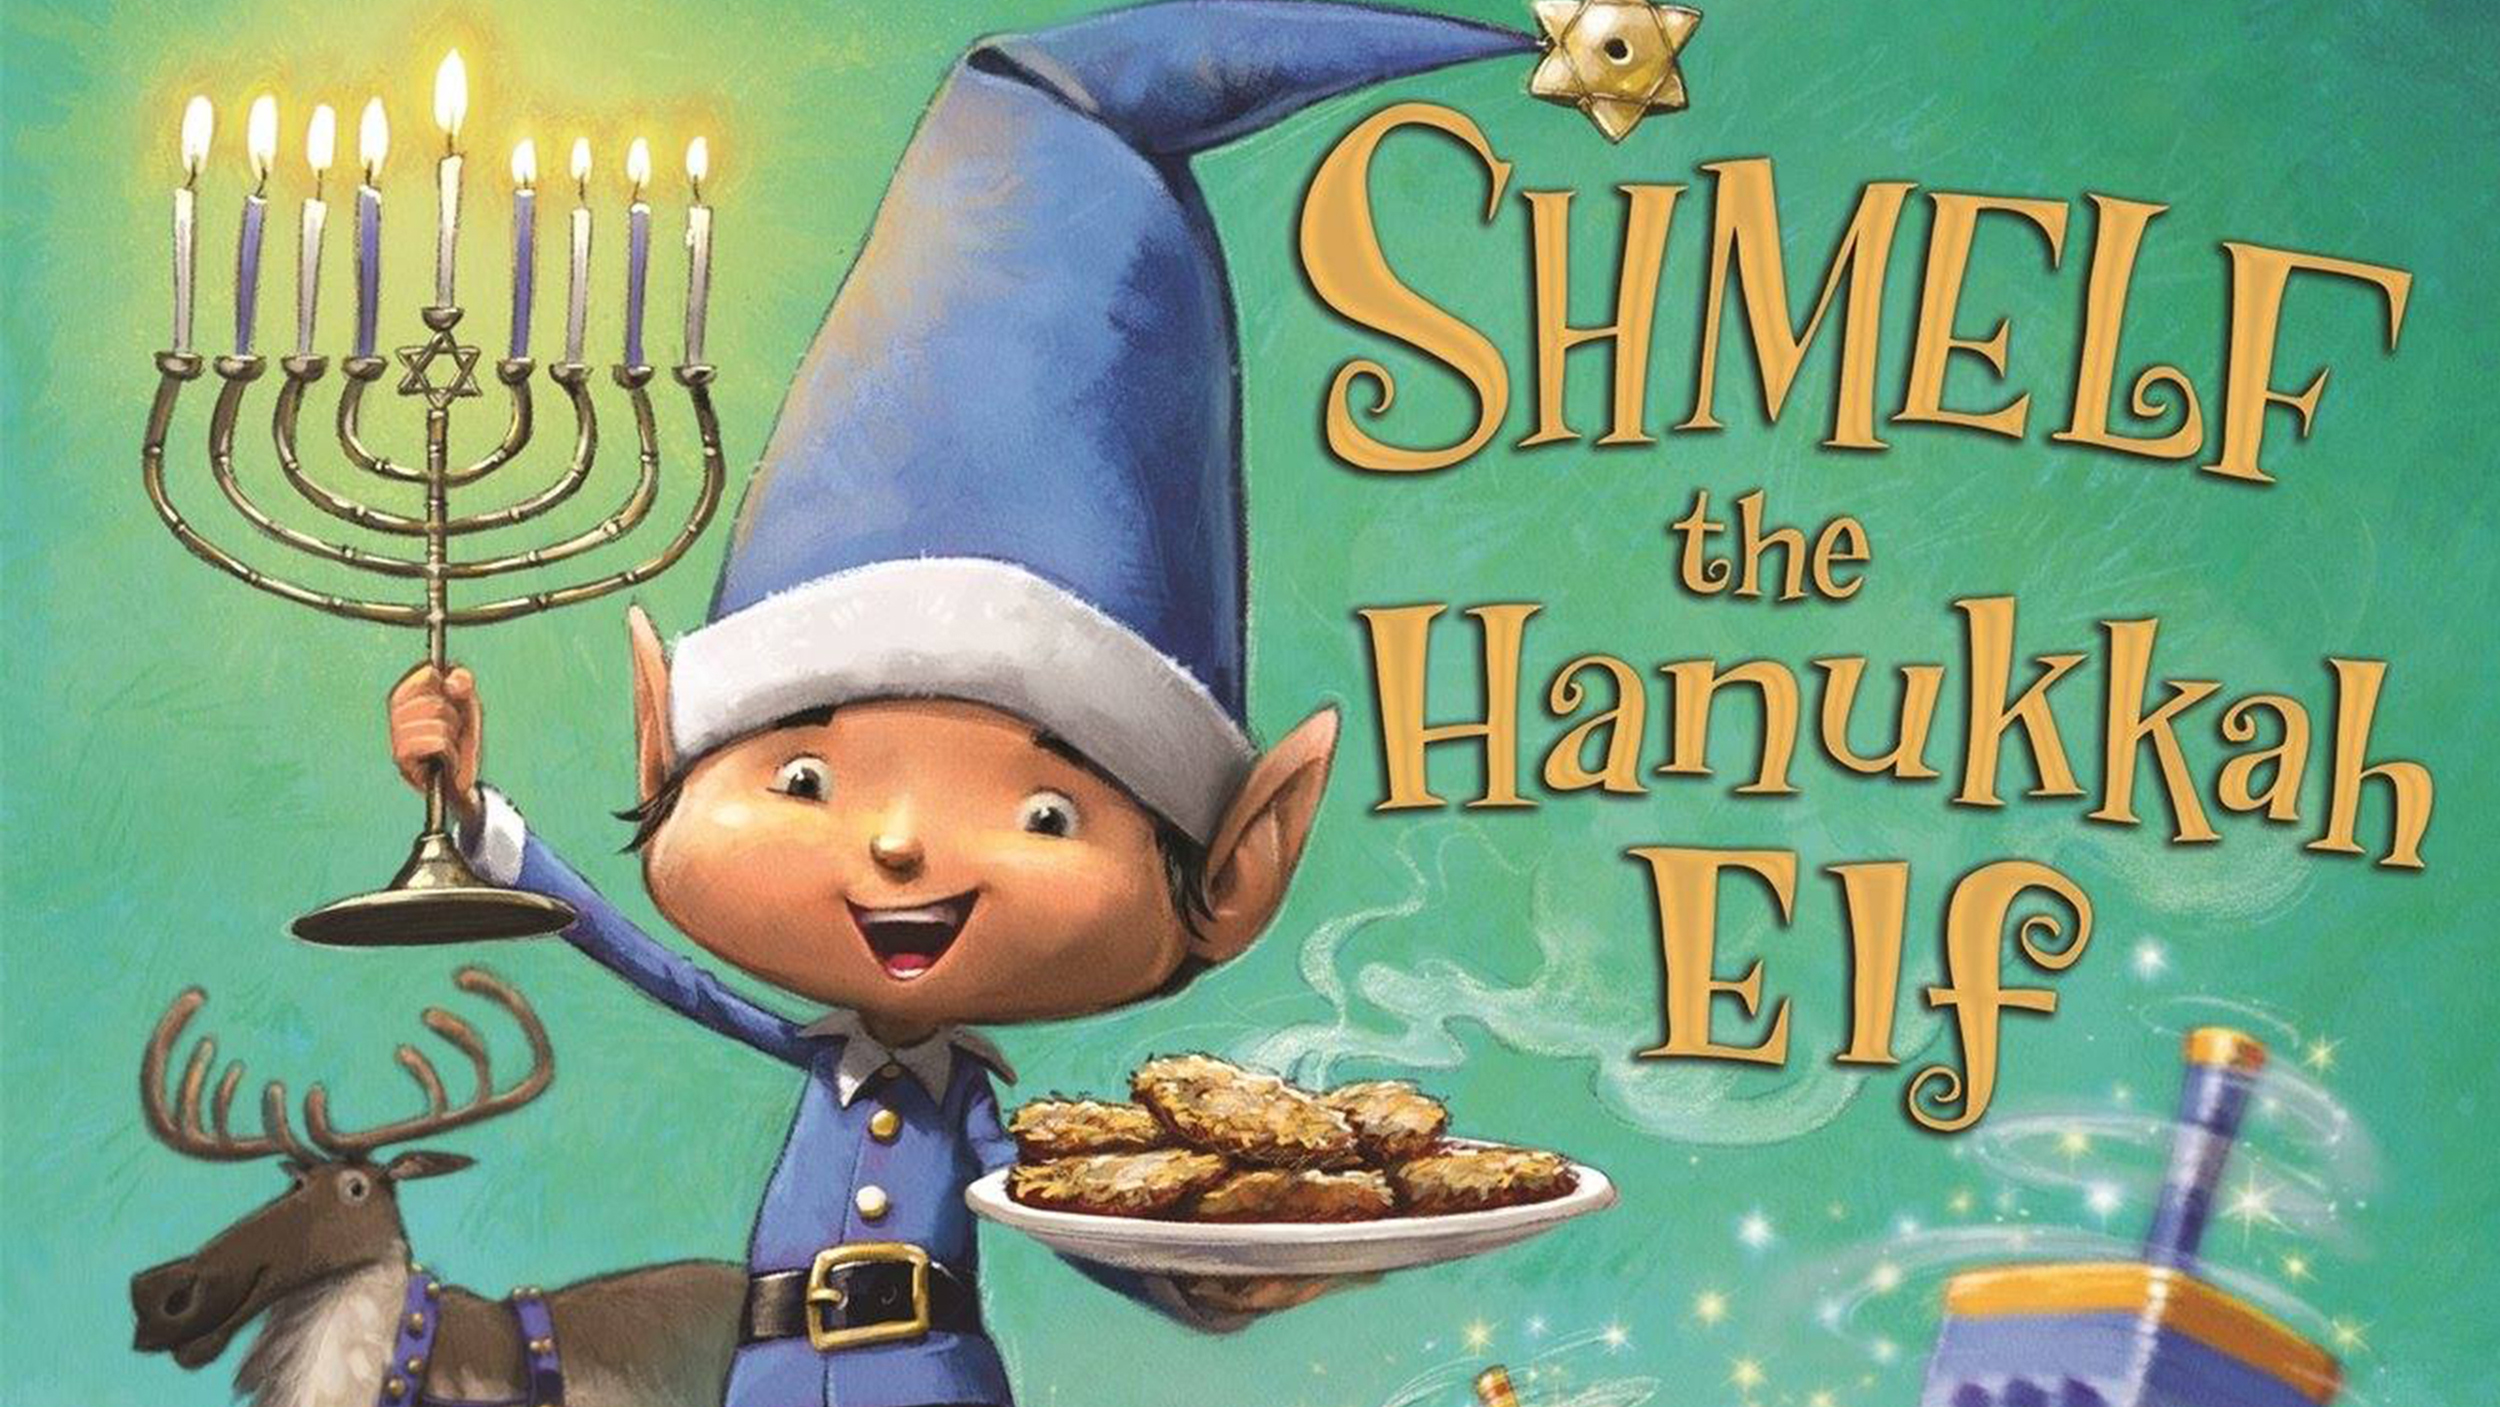 Shmelf\' gives Jewish kids a holiday elf of their own